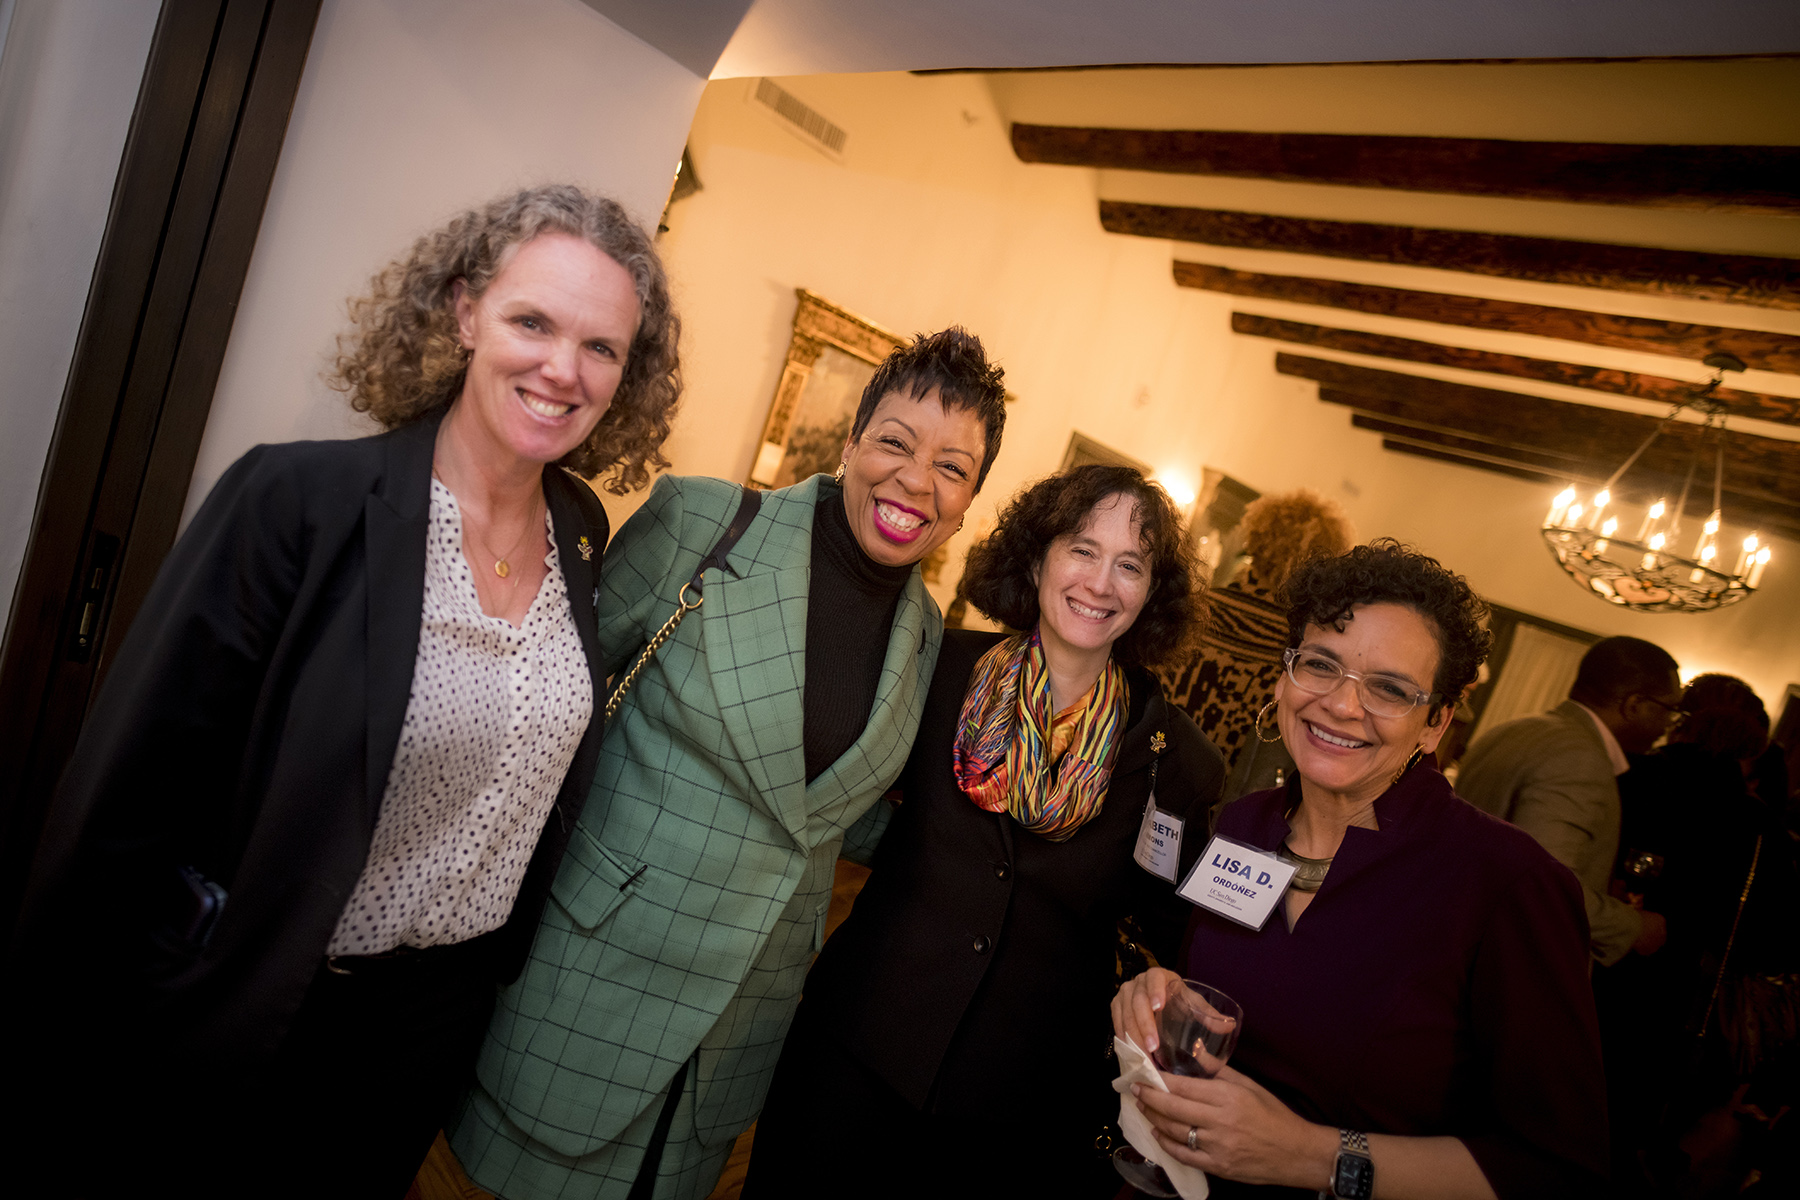 AVC Alison Sanders, Dr. Helen Griffith, EVC Elizabeth Simmons, and Dean Lisa Ordoñez at an event welcoming Dr. Griffith.